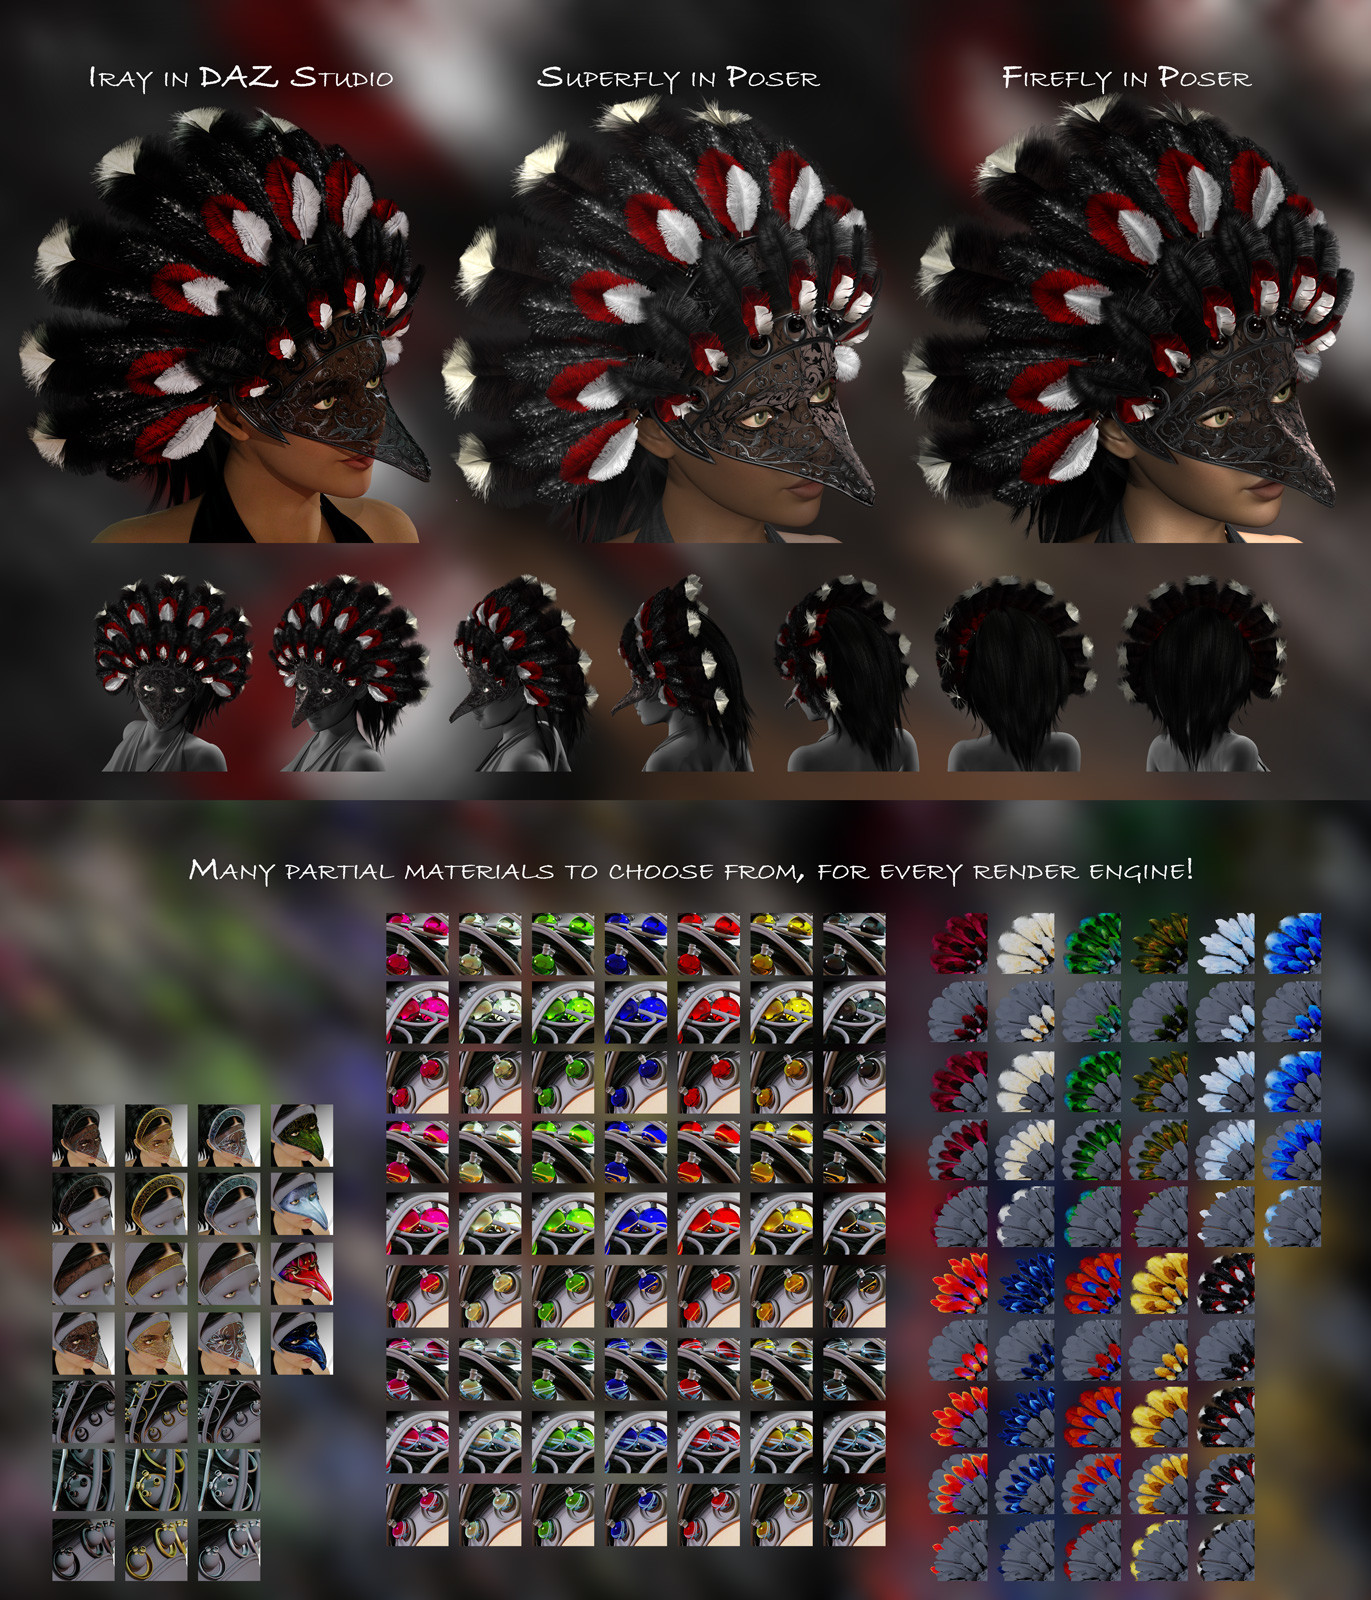 The eleventh and final set of textures, as well as examples of the different partial material settings that are included.  (DAZ Studio thumbnails are shown.)